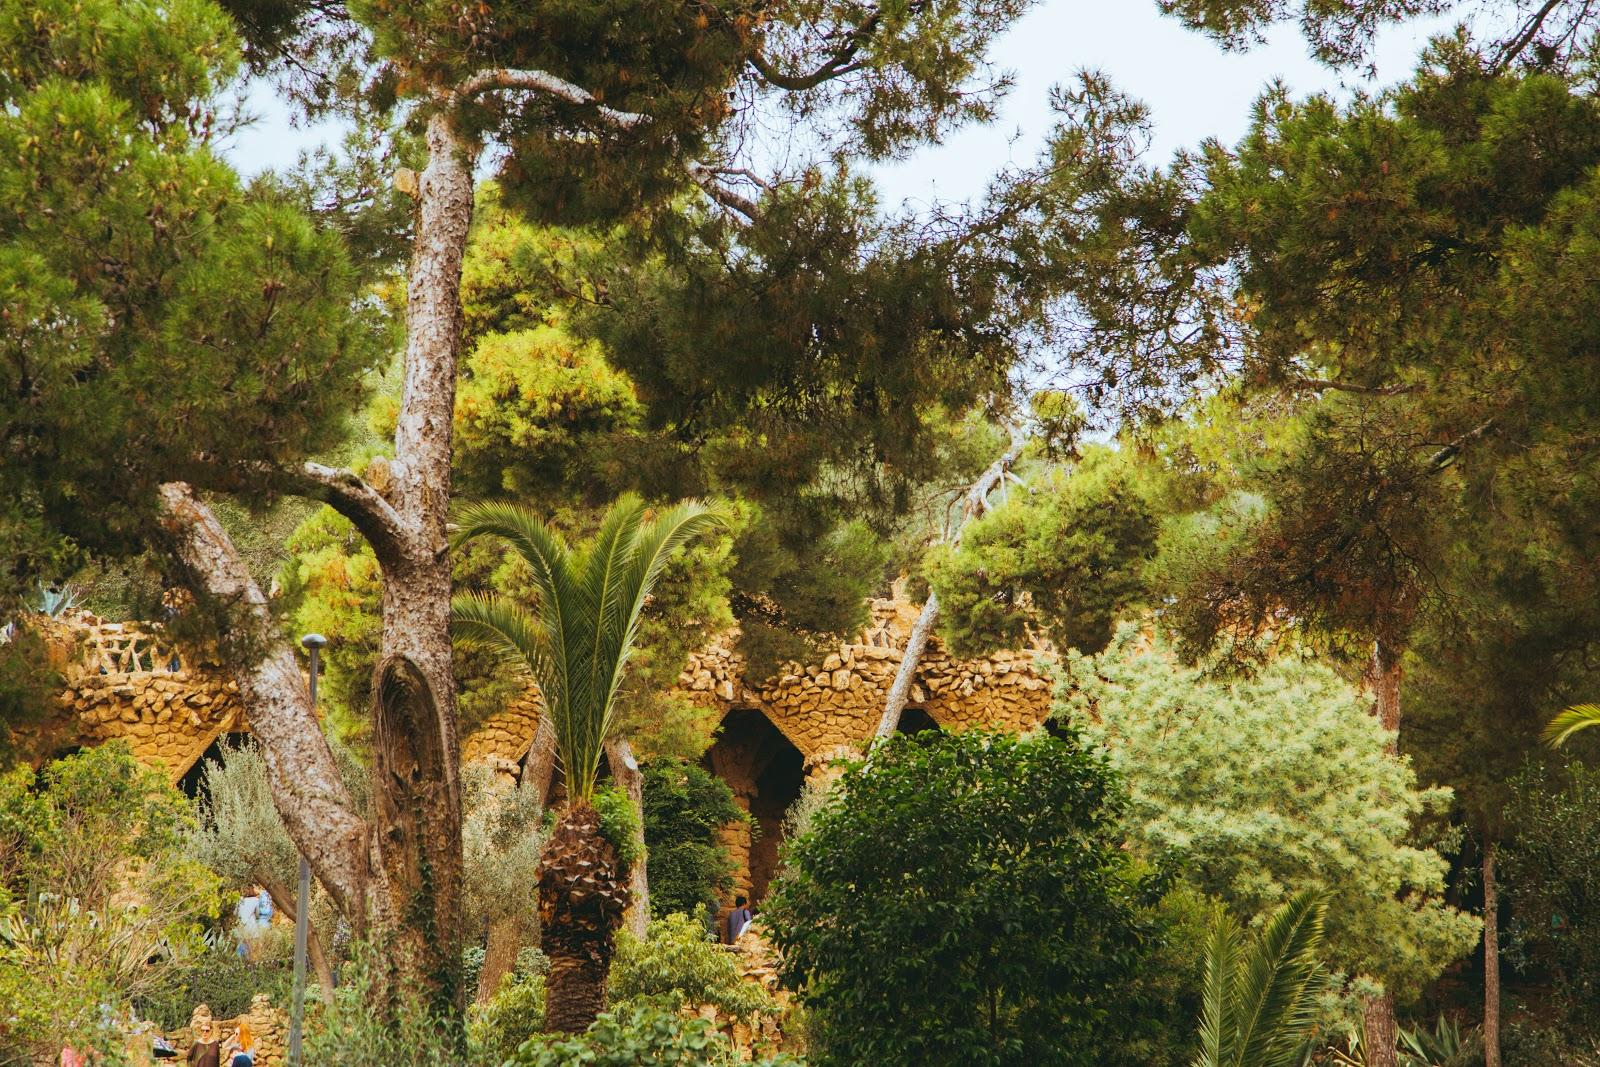 A view through the foliage of Park Guell's public area.